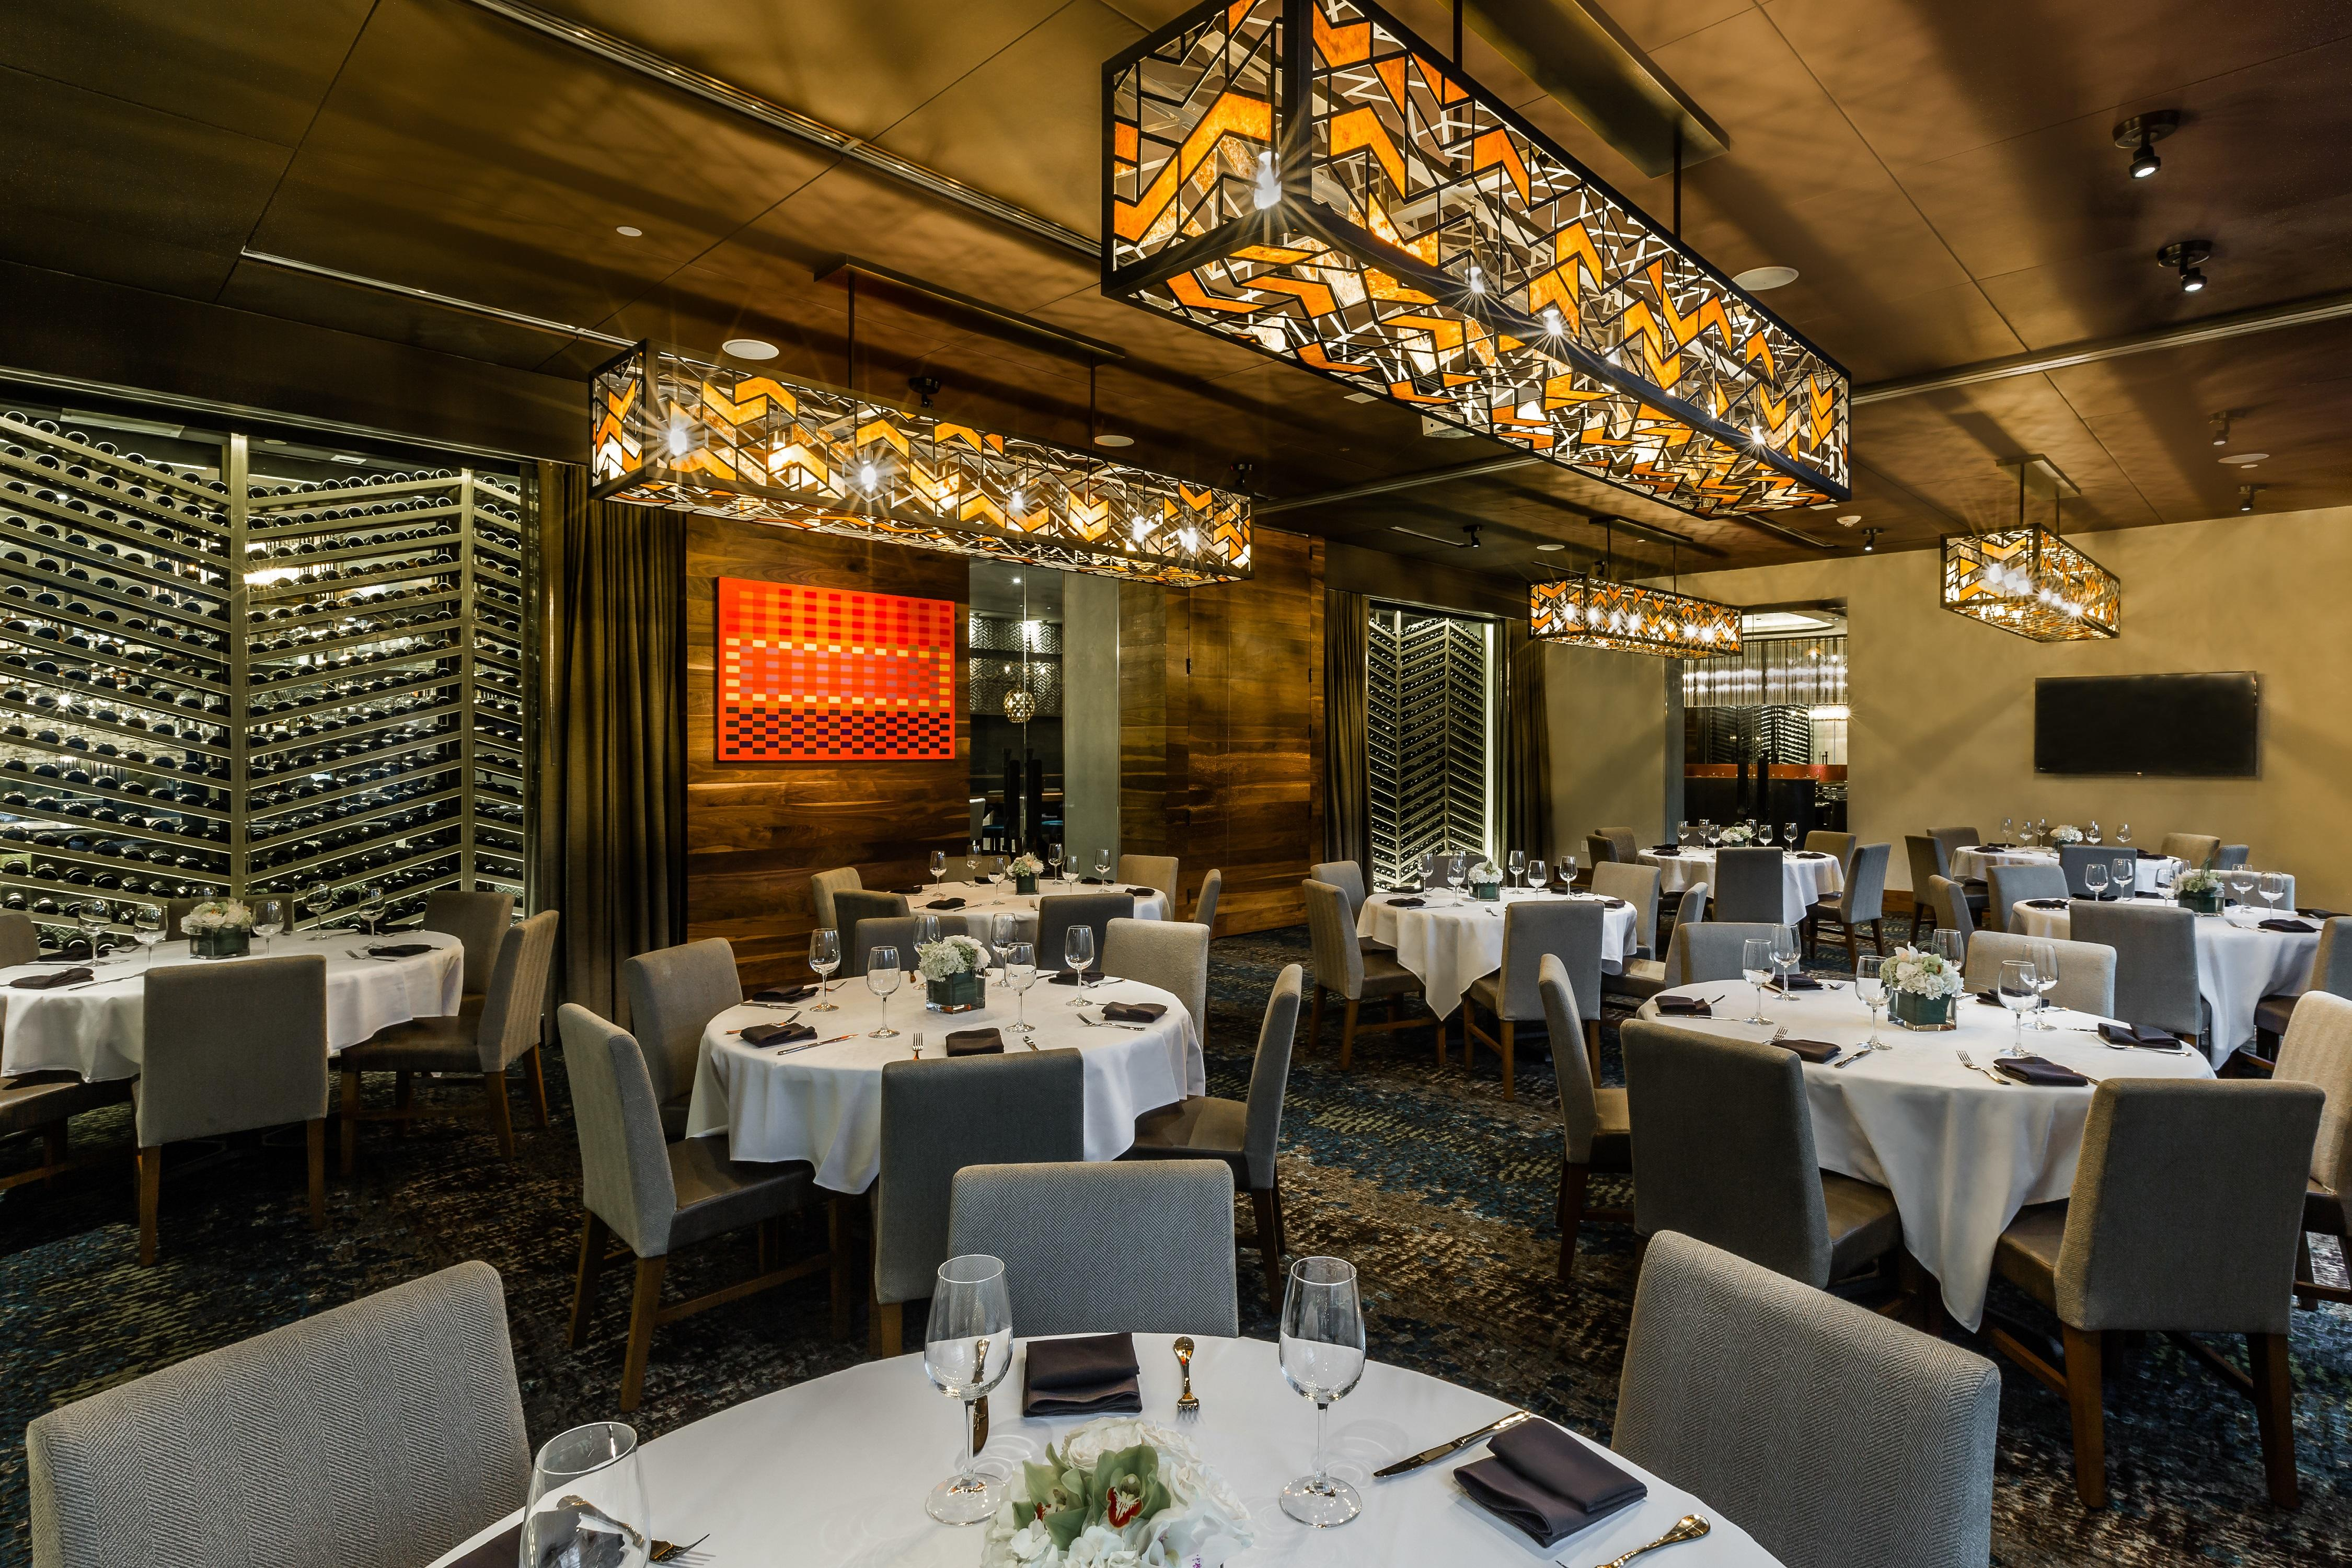 Del Frisco's Double Eagle Steakhouse Orlando GRAND CRU (WHOLE CELLAR) private dining room